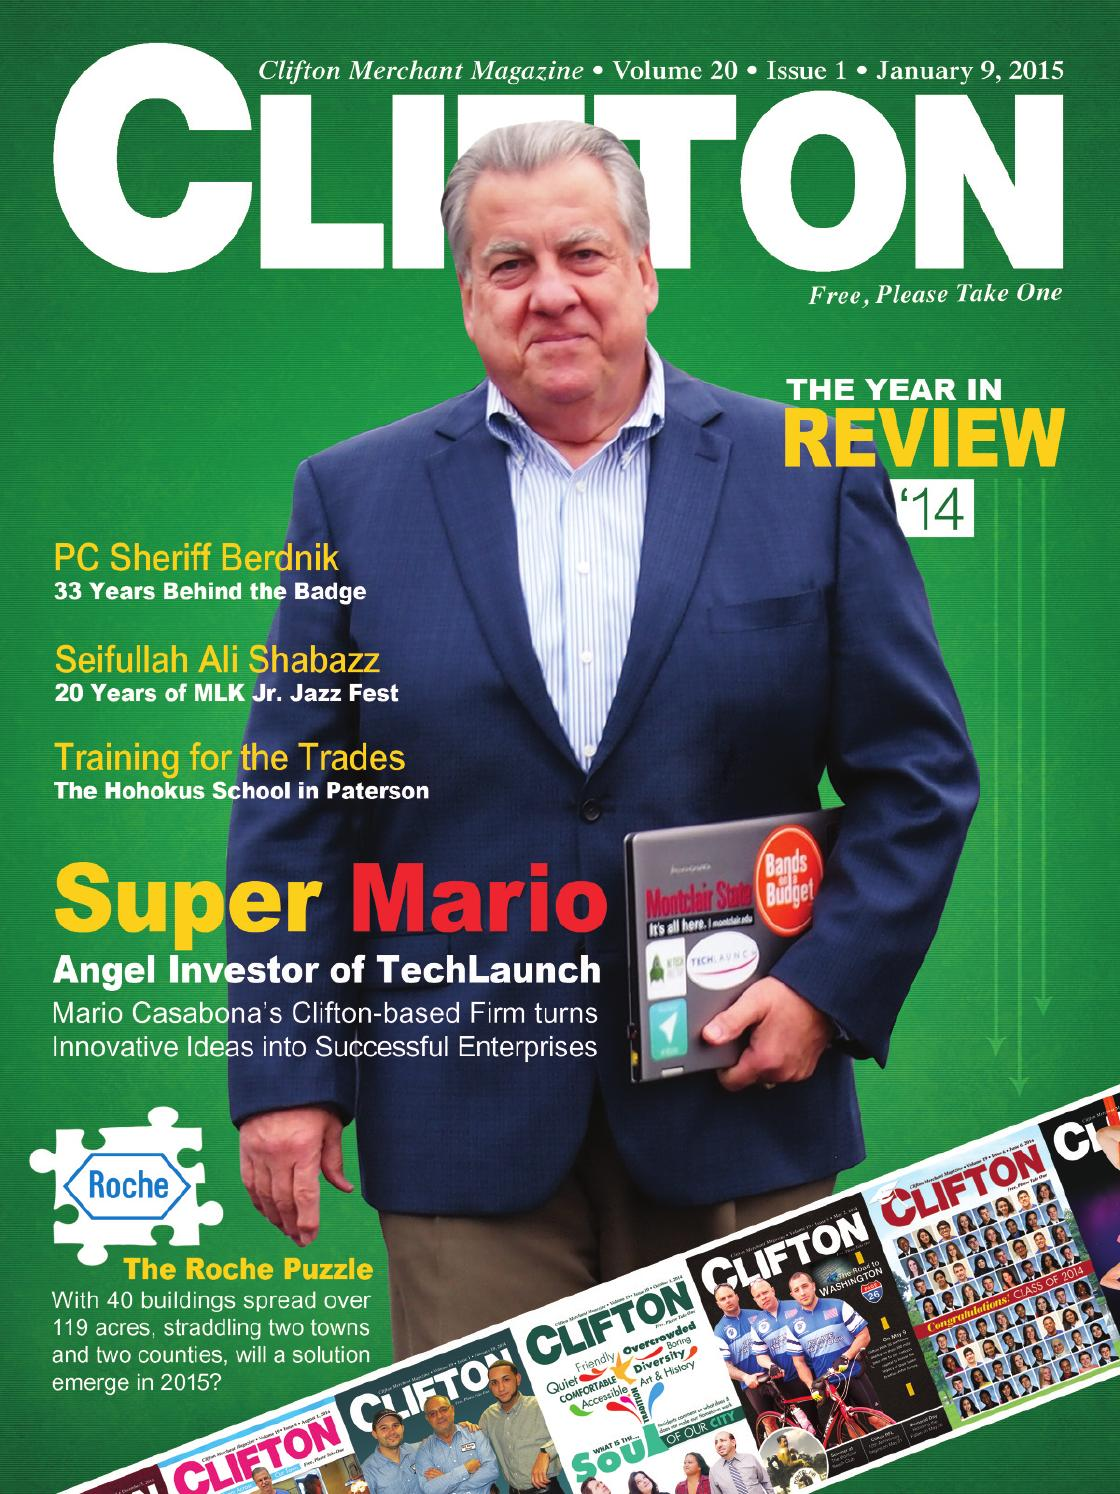 clifton merchant magazine by clifton merchant clifton merchant magazine 2015 by clifton merchant magazine issuu